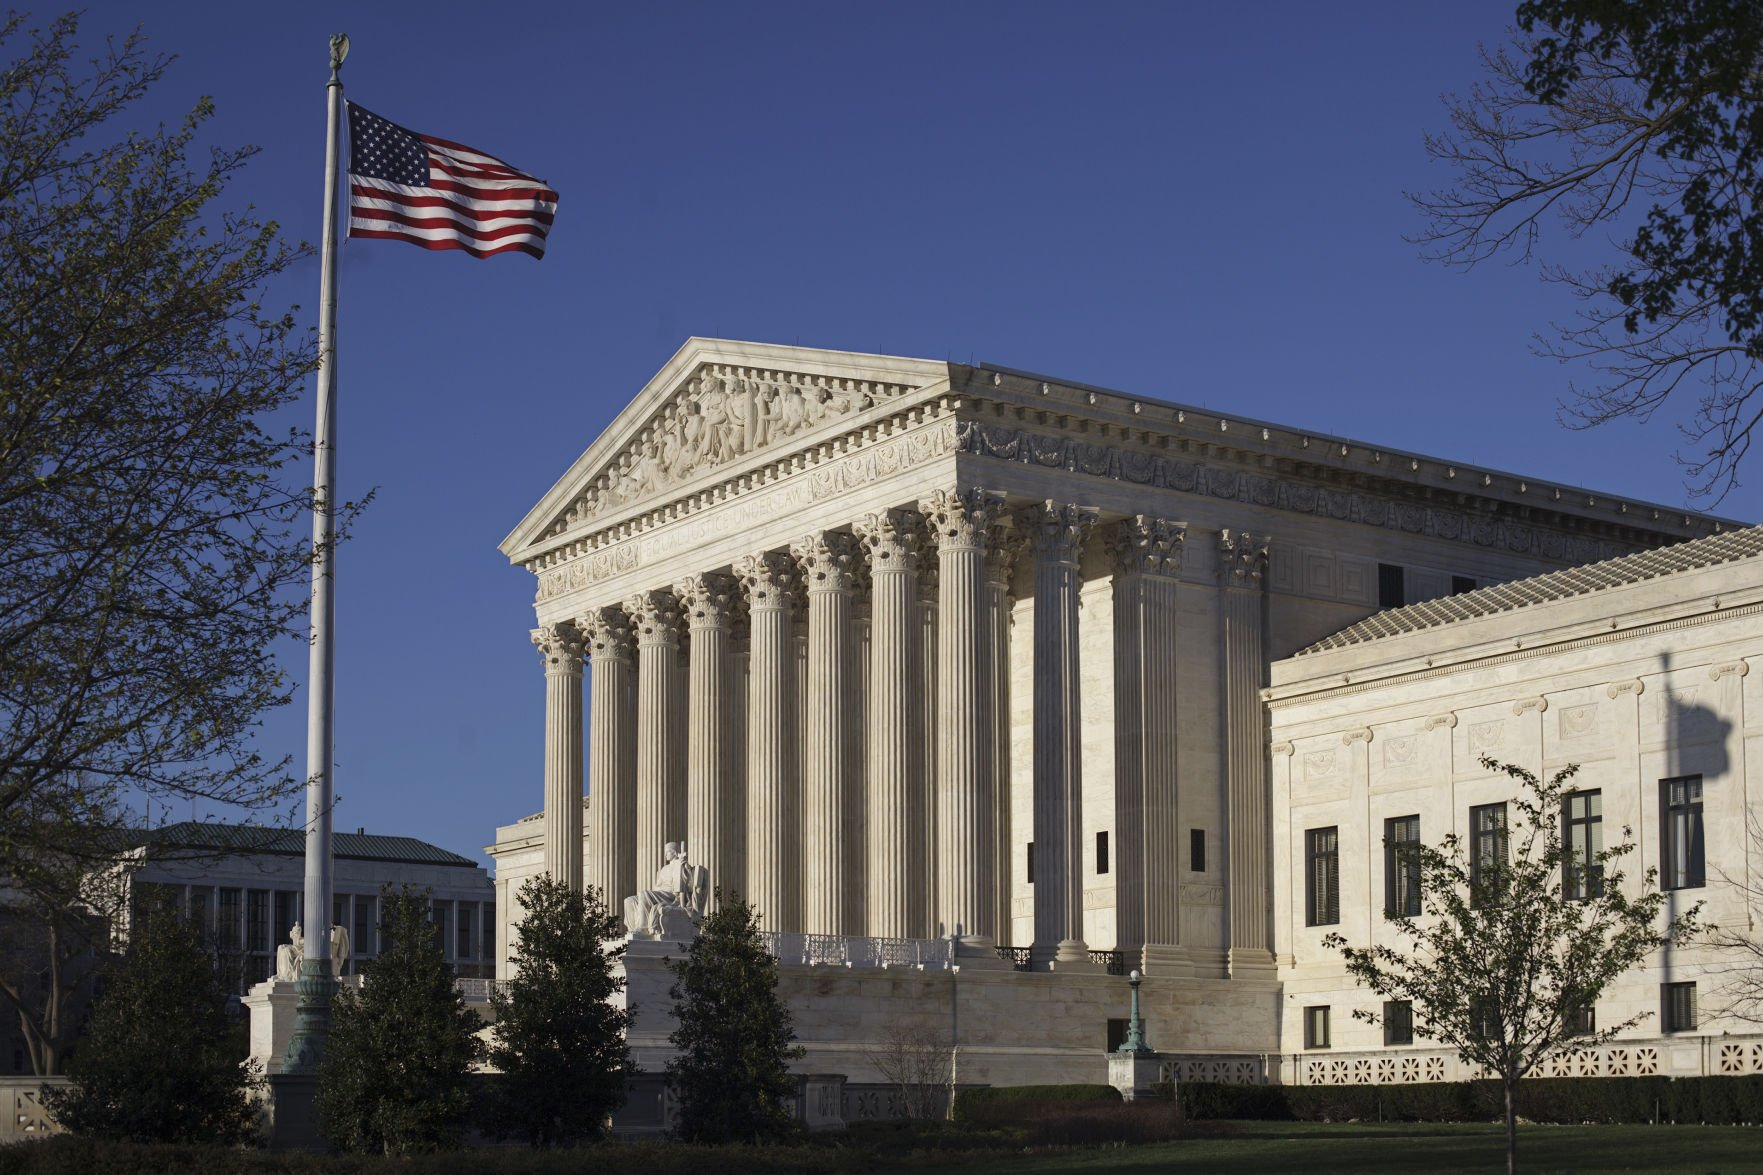 Efficiency Gap Weak Justification for Supreme Court Gerrymandering